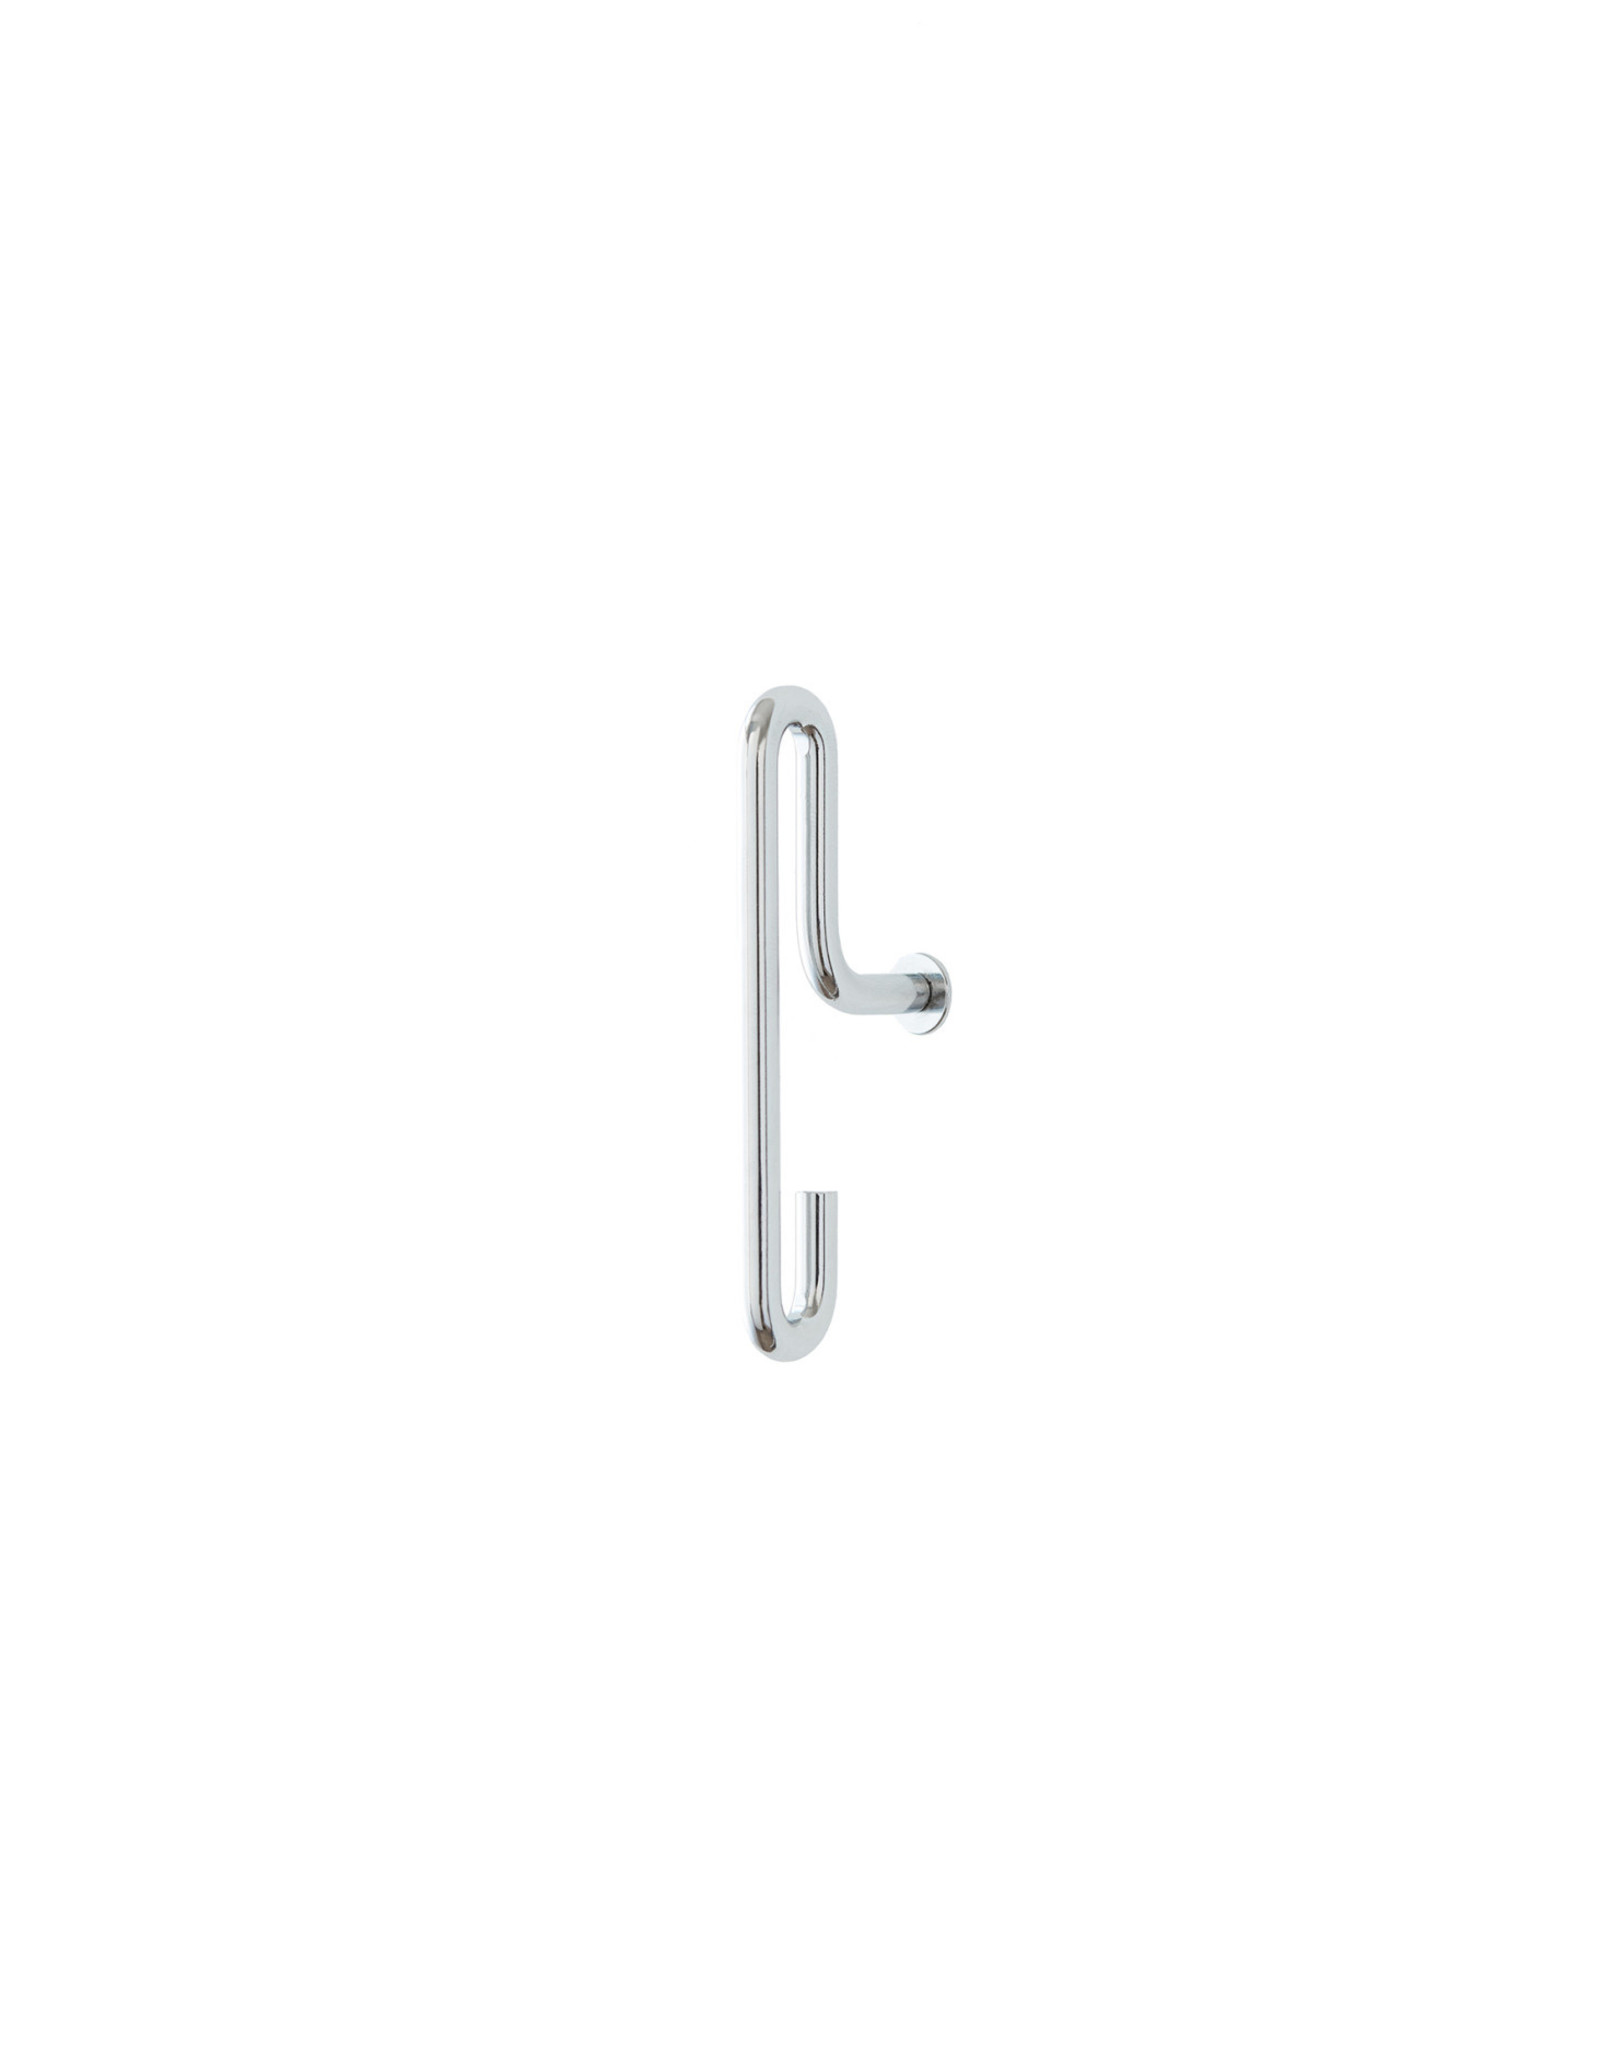 Moebe Moebe Wall Hook 2 x Small chrome